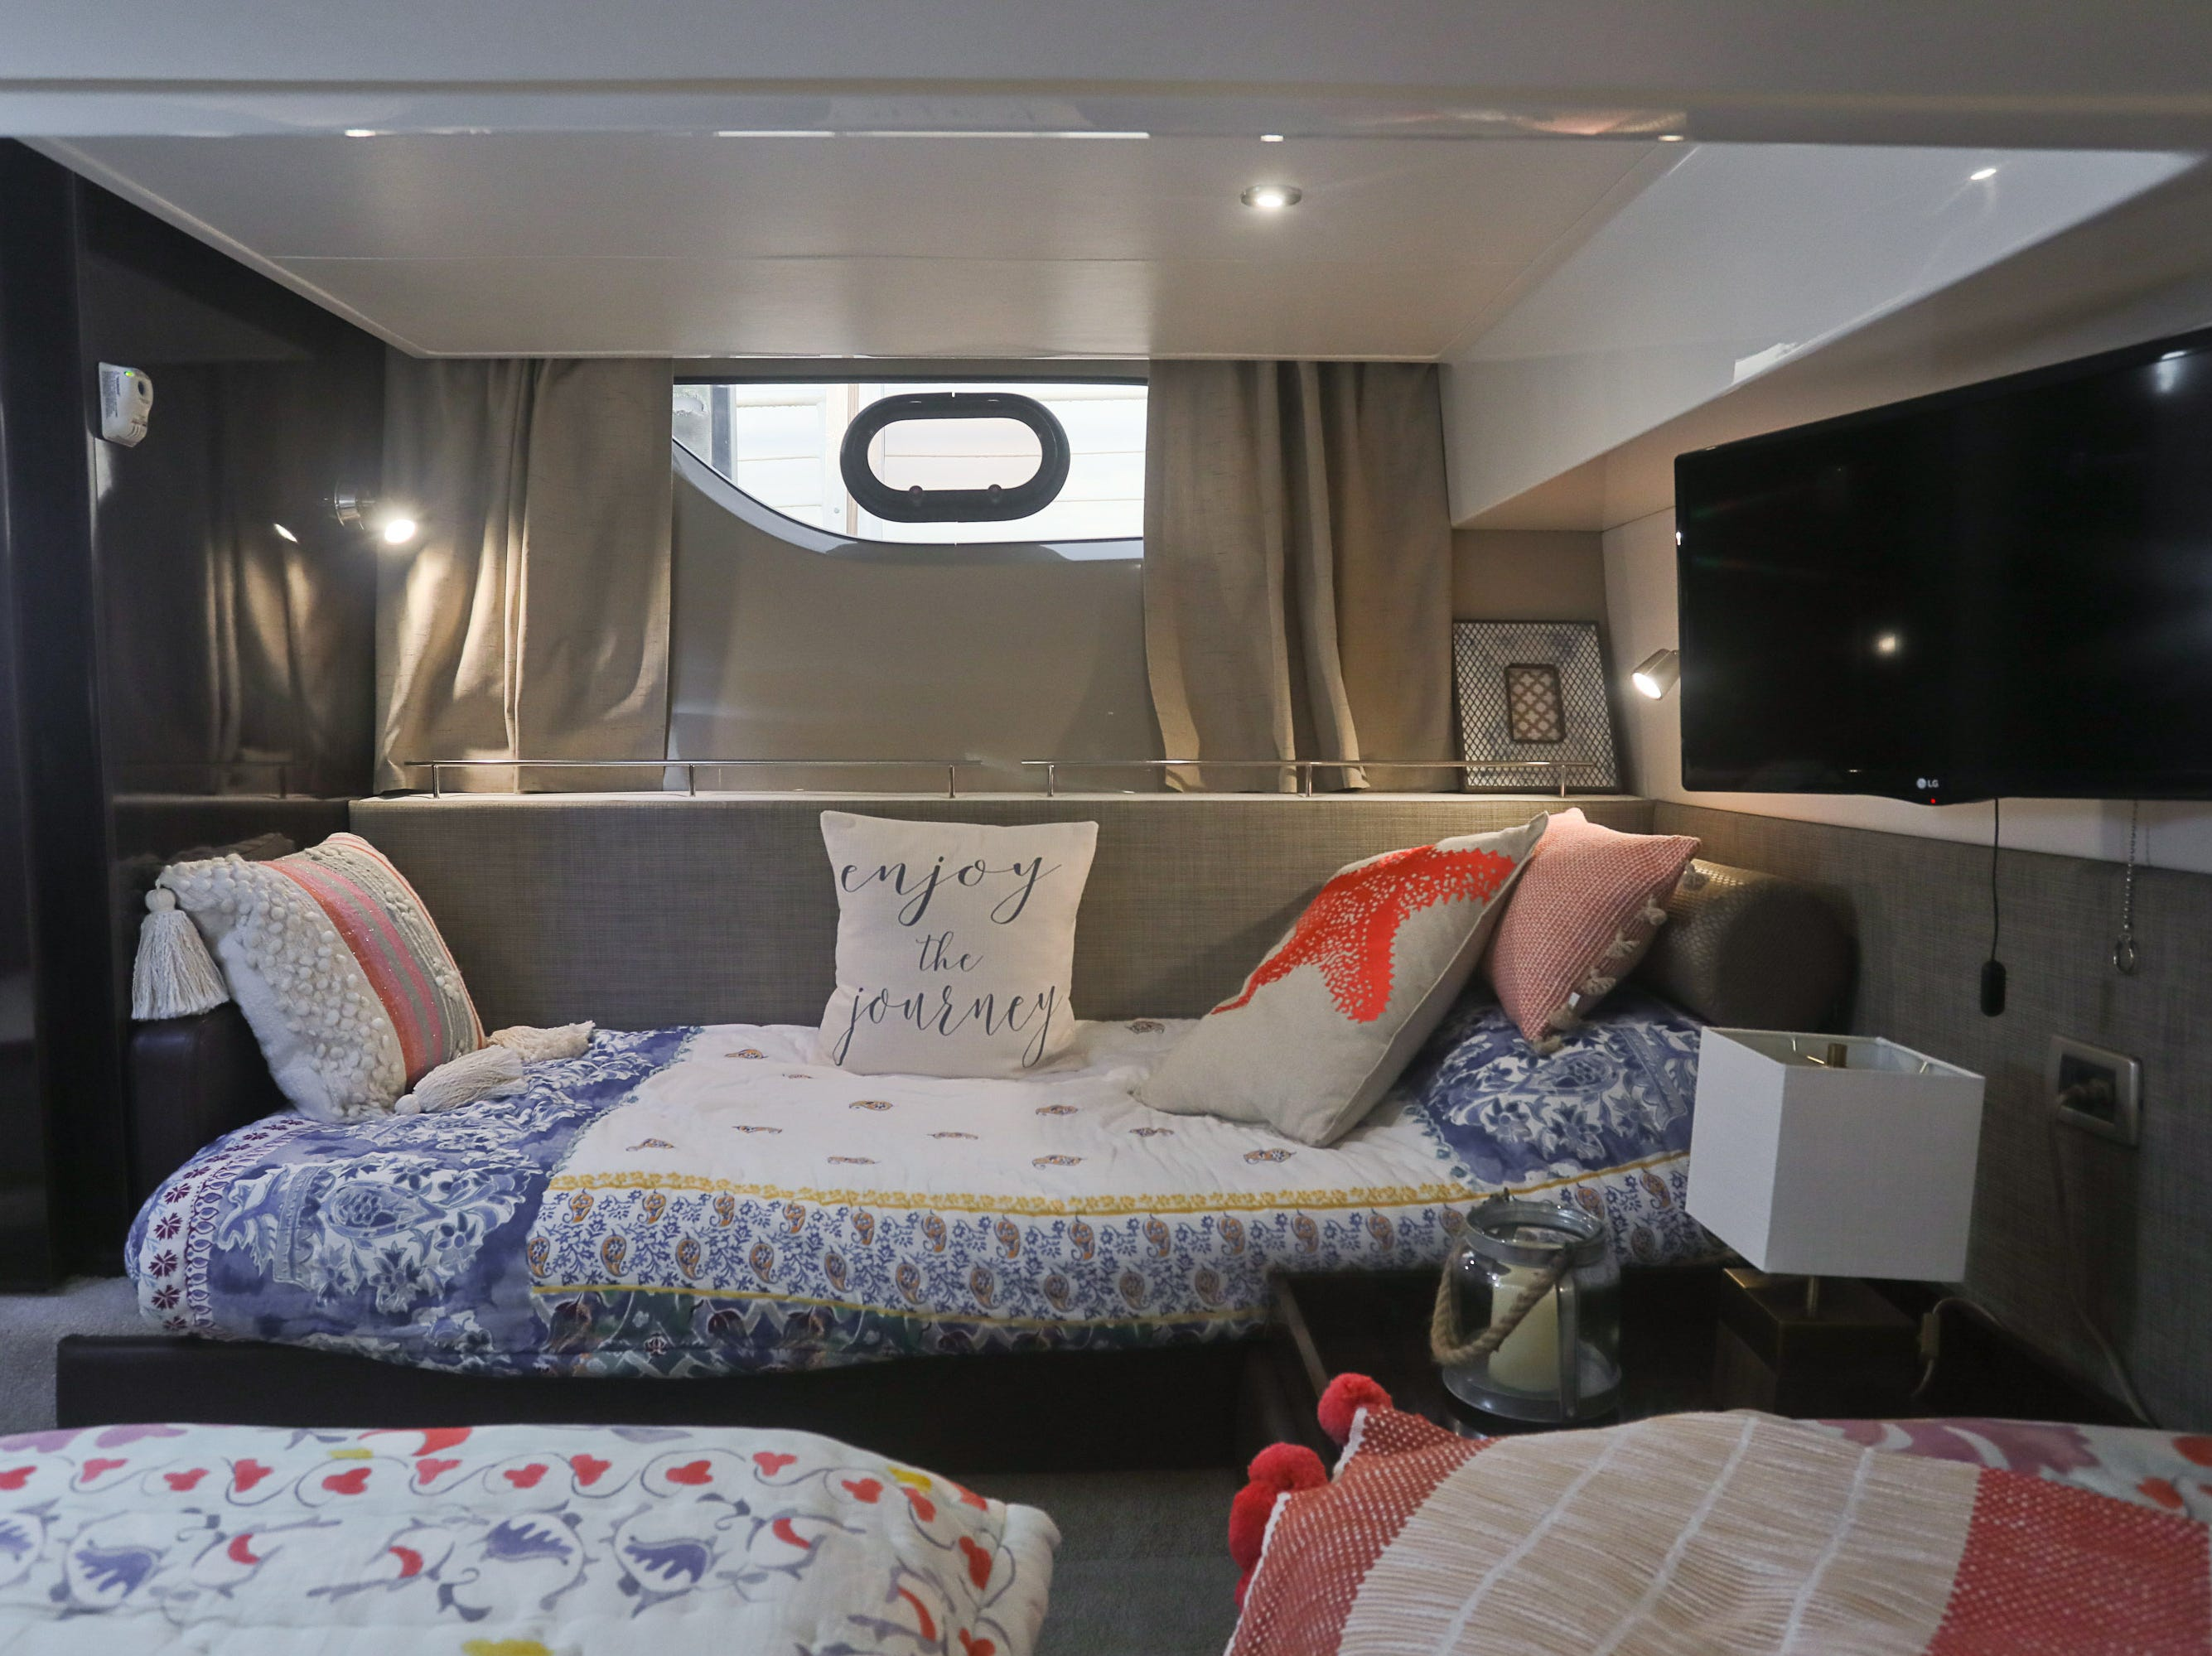 The guest stateroom of a 2017 Sea Ray 400 Sundancer at the Captain's Quarters marina in Louisville, KY. Dec. 17, 2018